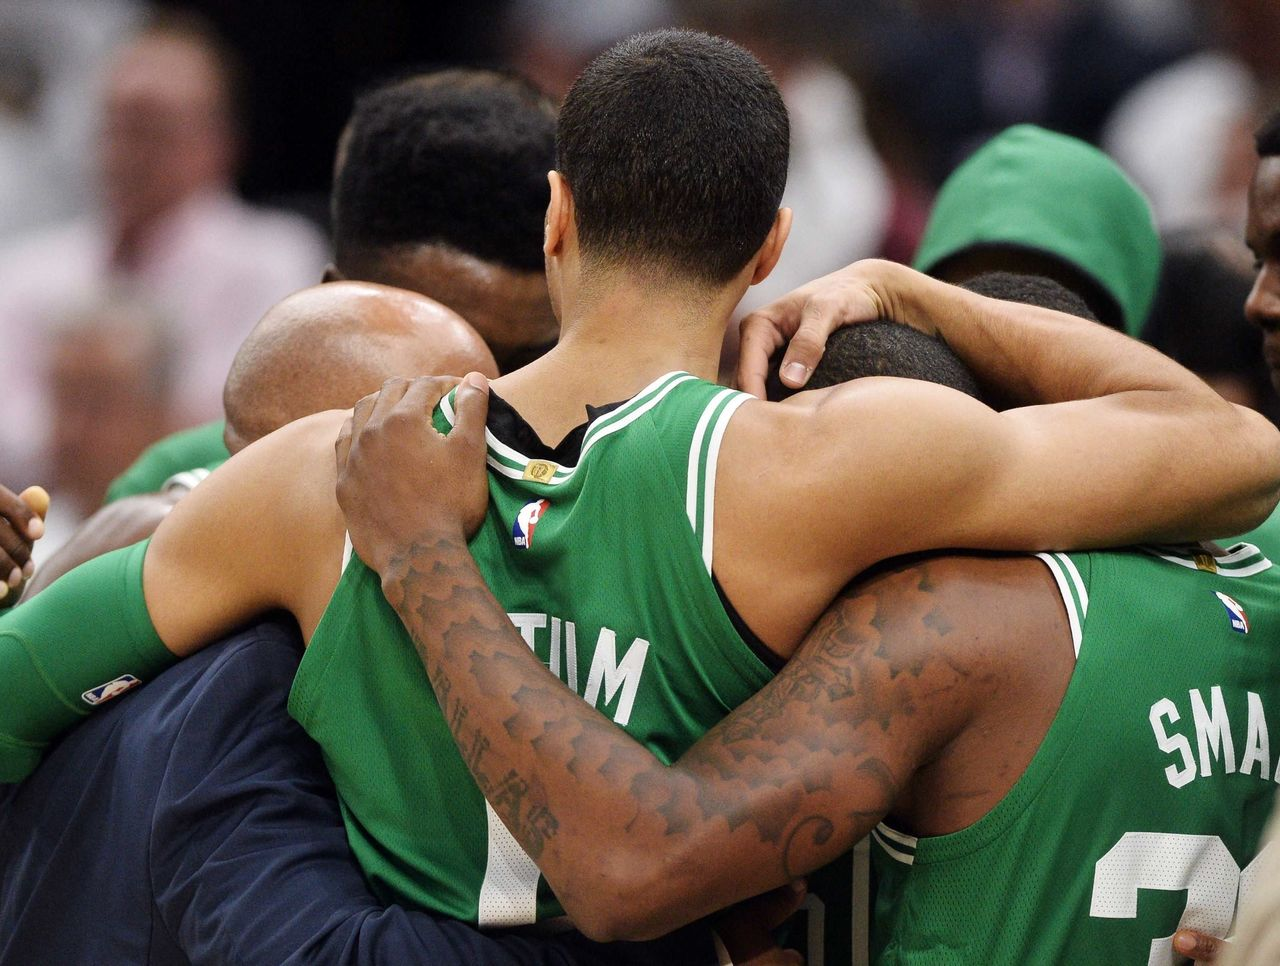 Cropped 2017 10 18t012232z 681340928 nocid rtrmadp 3 nba boston celtics at cleveland cavaliers